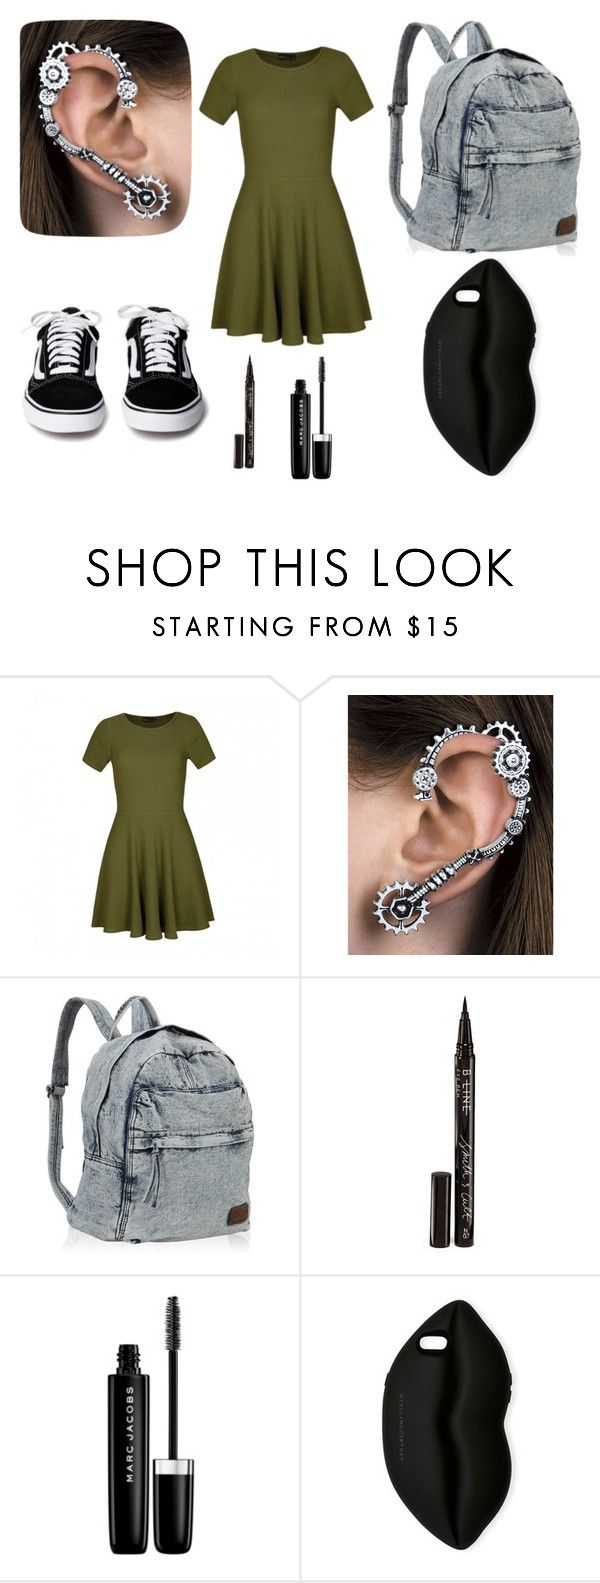 """Science club"" by skylar0629 ❤ liked on Polyvore featuring Ally Fashion, Smith & Cult, Marc Jacobs and STELLA McCARTNEY"